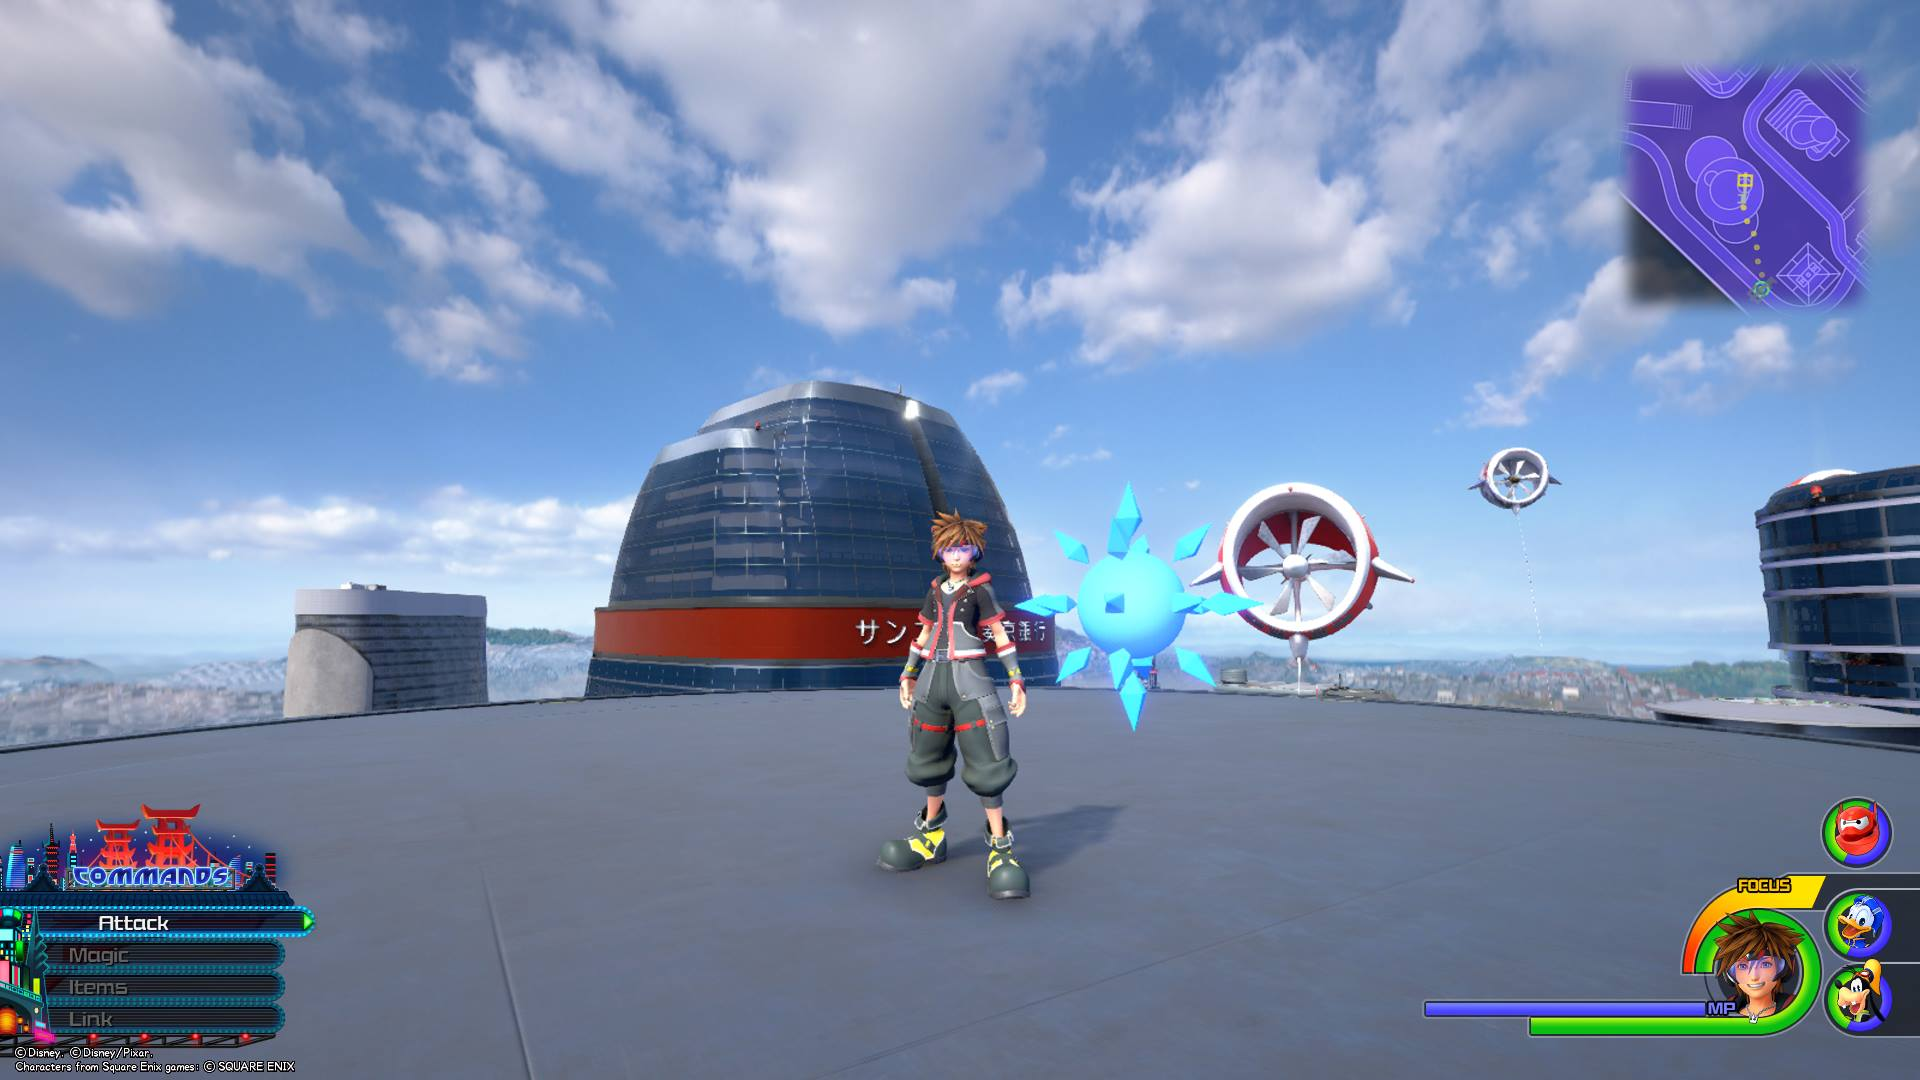 The twelfth Battlegate in Kingdom Hearts 3 can be found at the top of a large building in San Fransokyo.